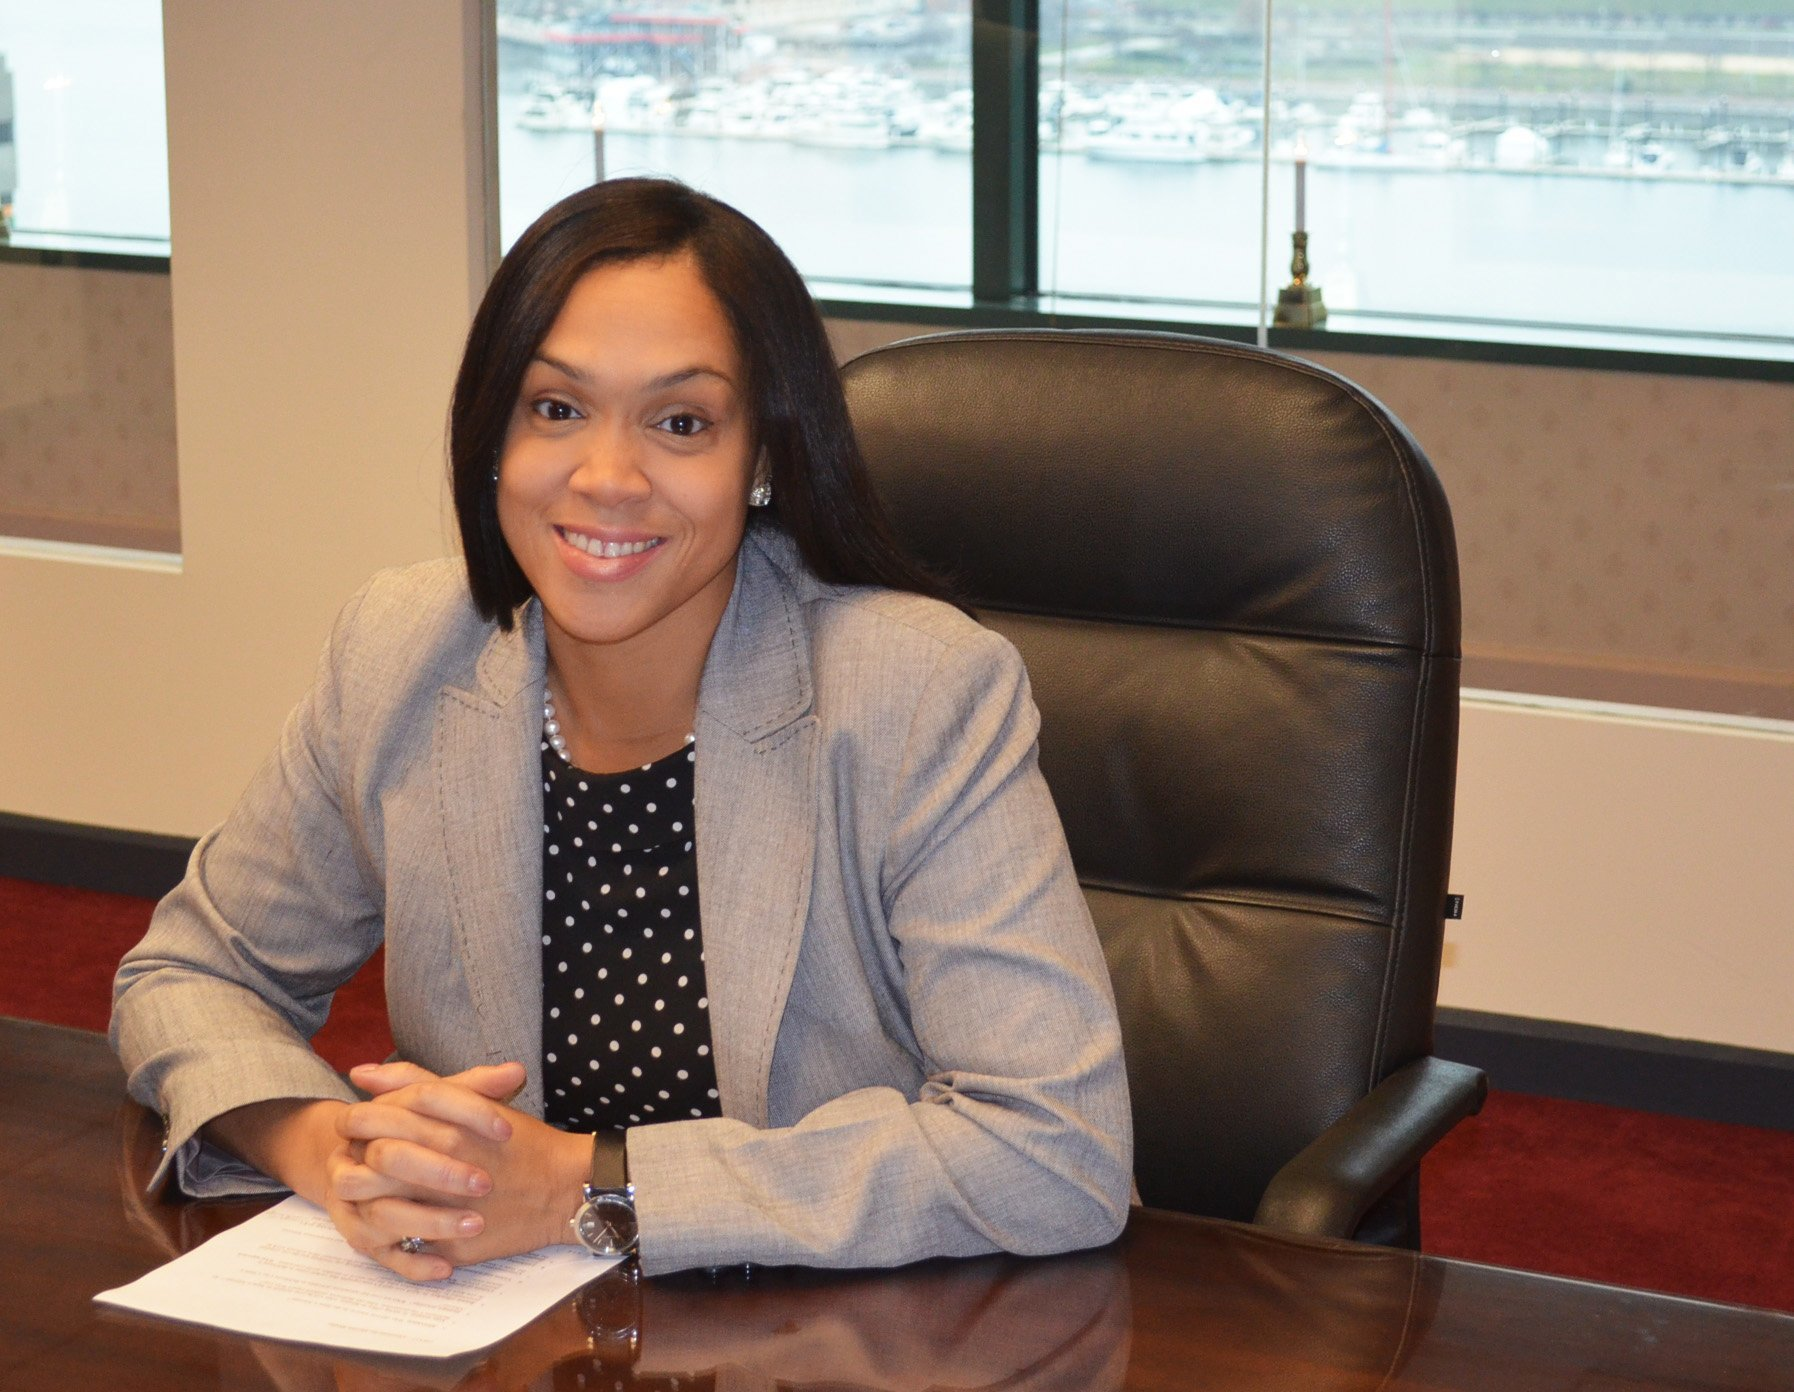 City's new State's Attorney Marilyn Mosby seeks to build trust